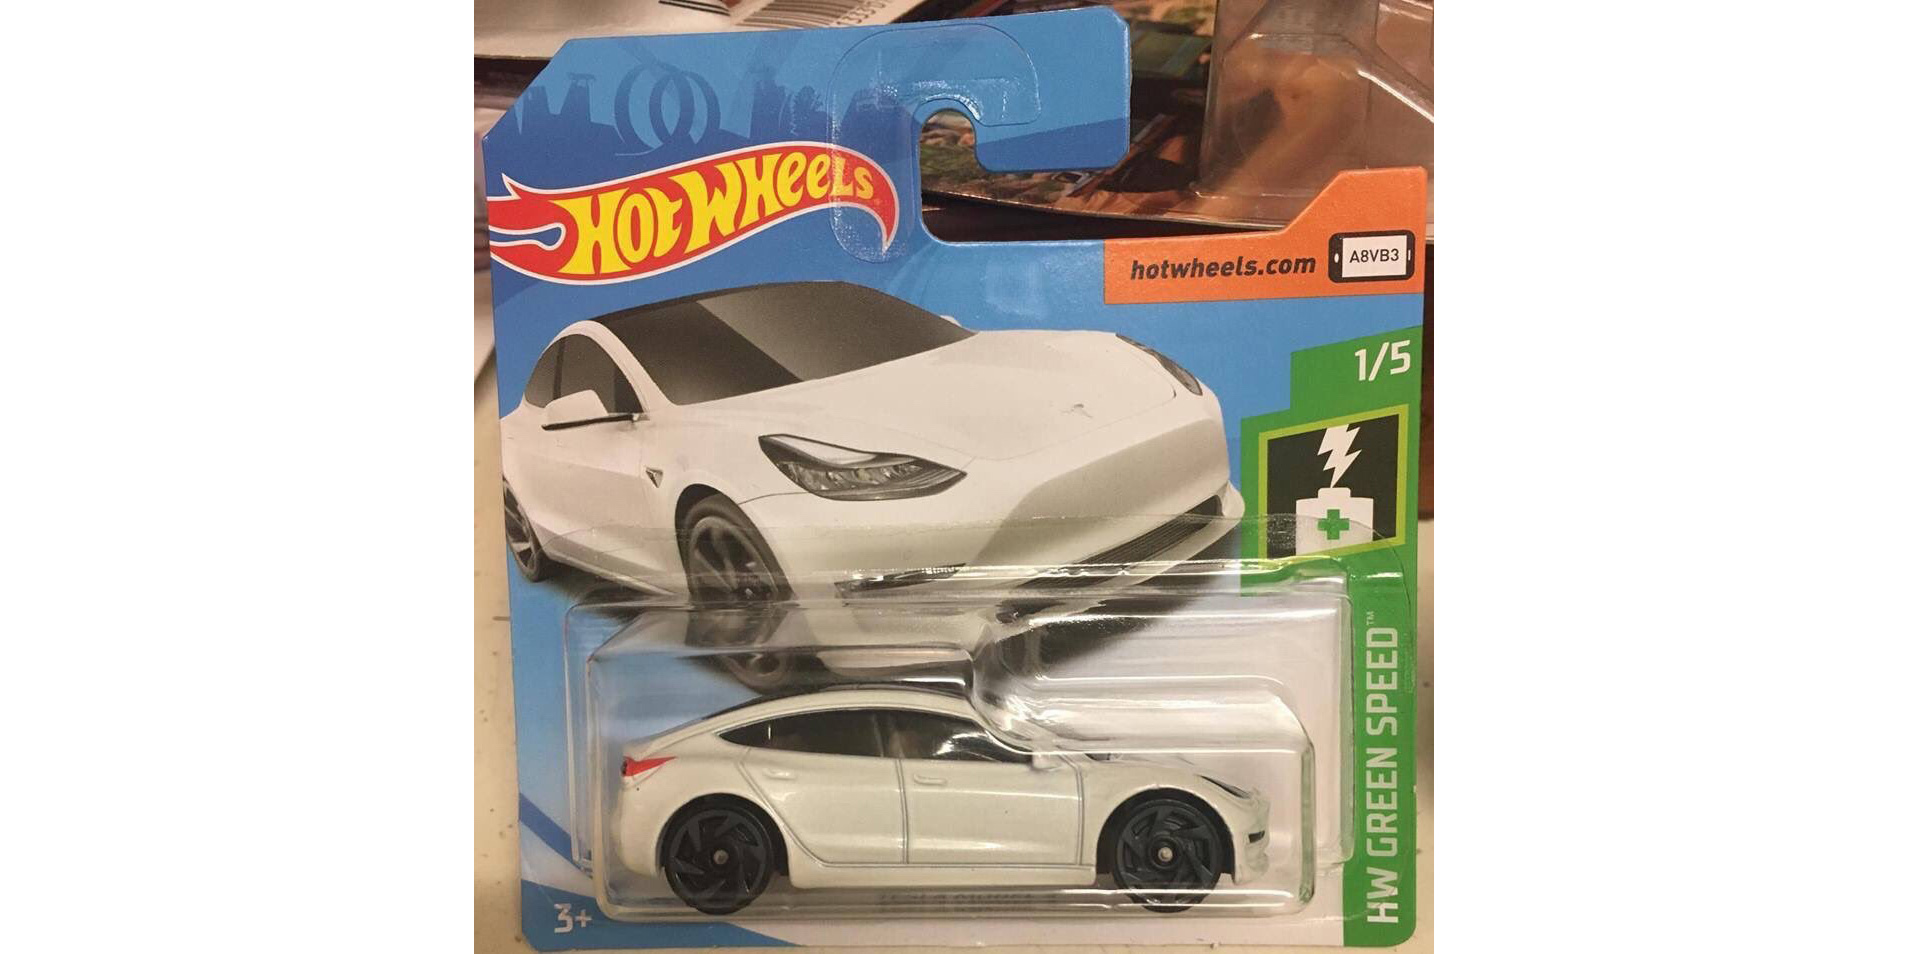 Tesla Model 3 in stores — toy stores, as new Hot Wheels release